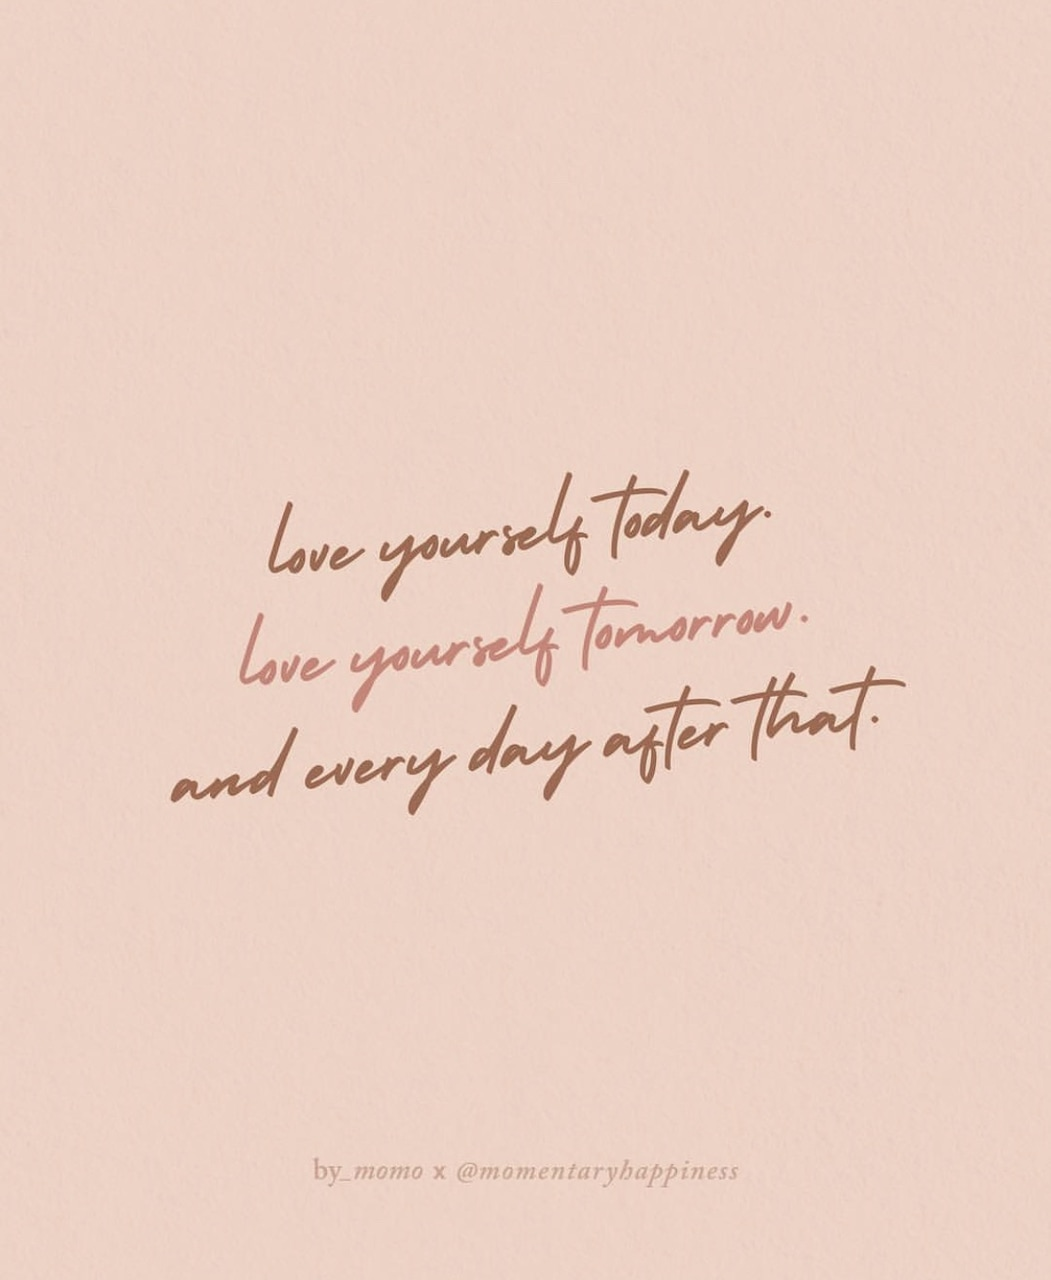 frases, motivational quotes, love yourself and lamour